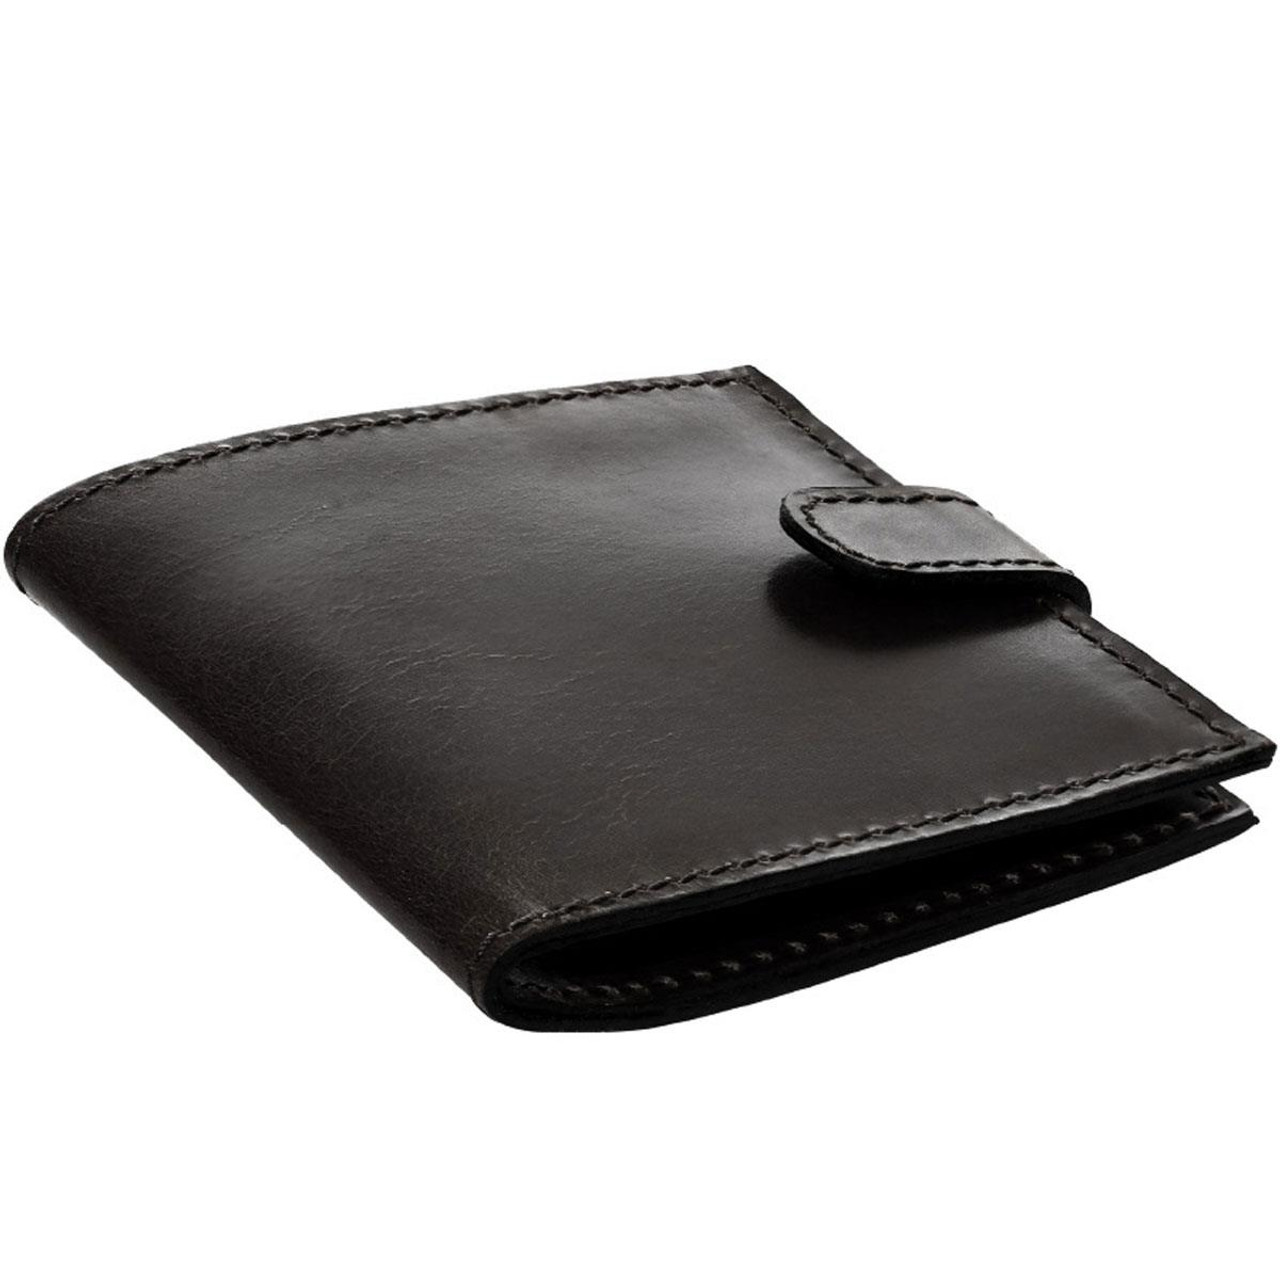 Teales Premier Single Leather Certificate Holder